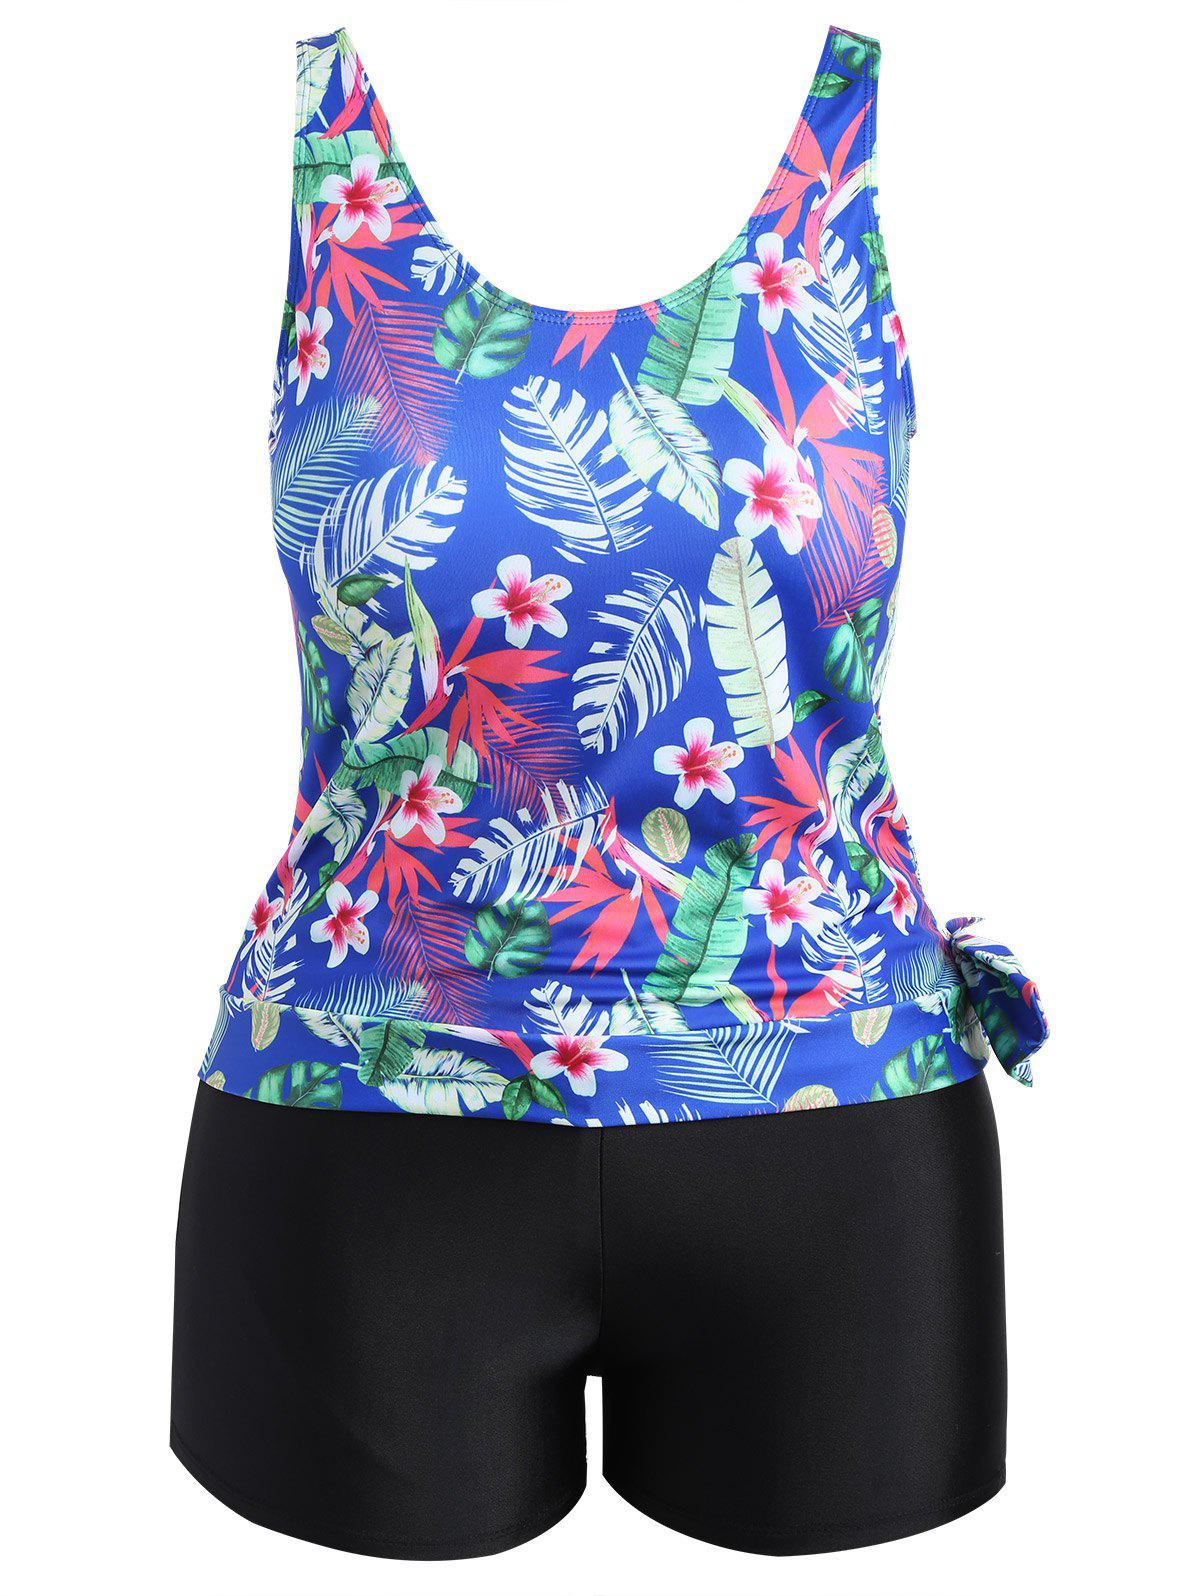 Plus Size Tropical Leaf Floral Print Tankini SetWOMEN<br><br>Size: 2XL; Color: BLUE; Gender: For Women; Swimwear Type: Tankini; Material: Polyester,Spandex; Bra Style: Padded; Support Type: Wire Free; Pattern Type: Floral; Waist: Natural; Weight: 0.3250kg; Package Contents: 1 x Top 1 x Bottom;